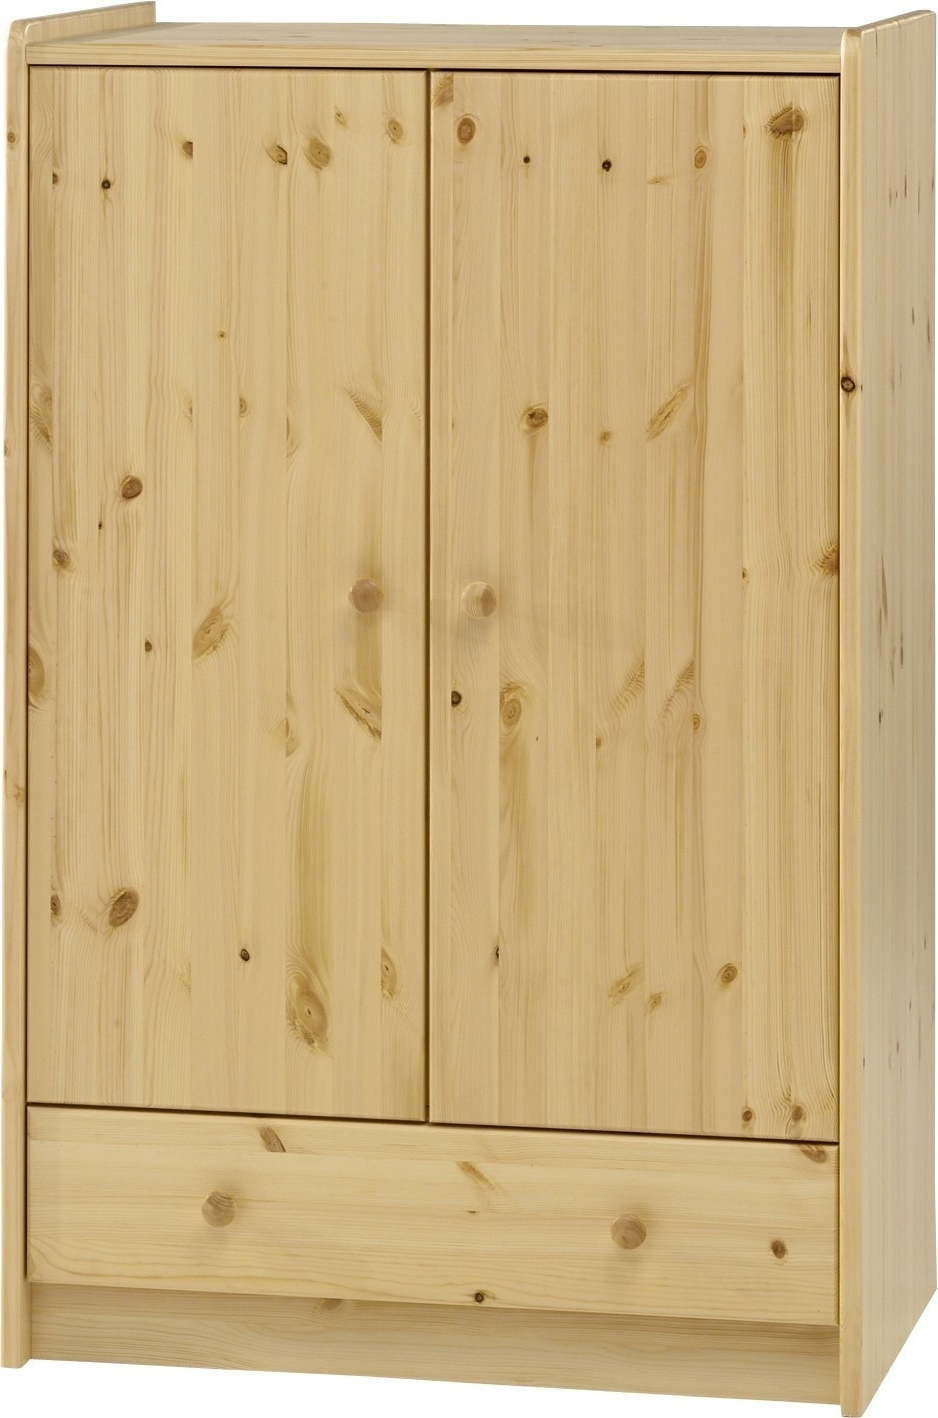 Steens For Kids Pine Low Wardrobe Intended For Most Current Natural Pine Wardrobes (View 13 of 15)